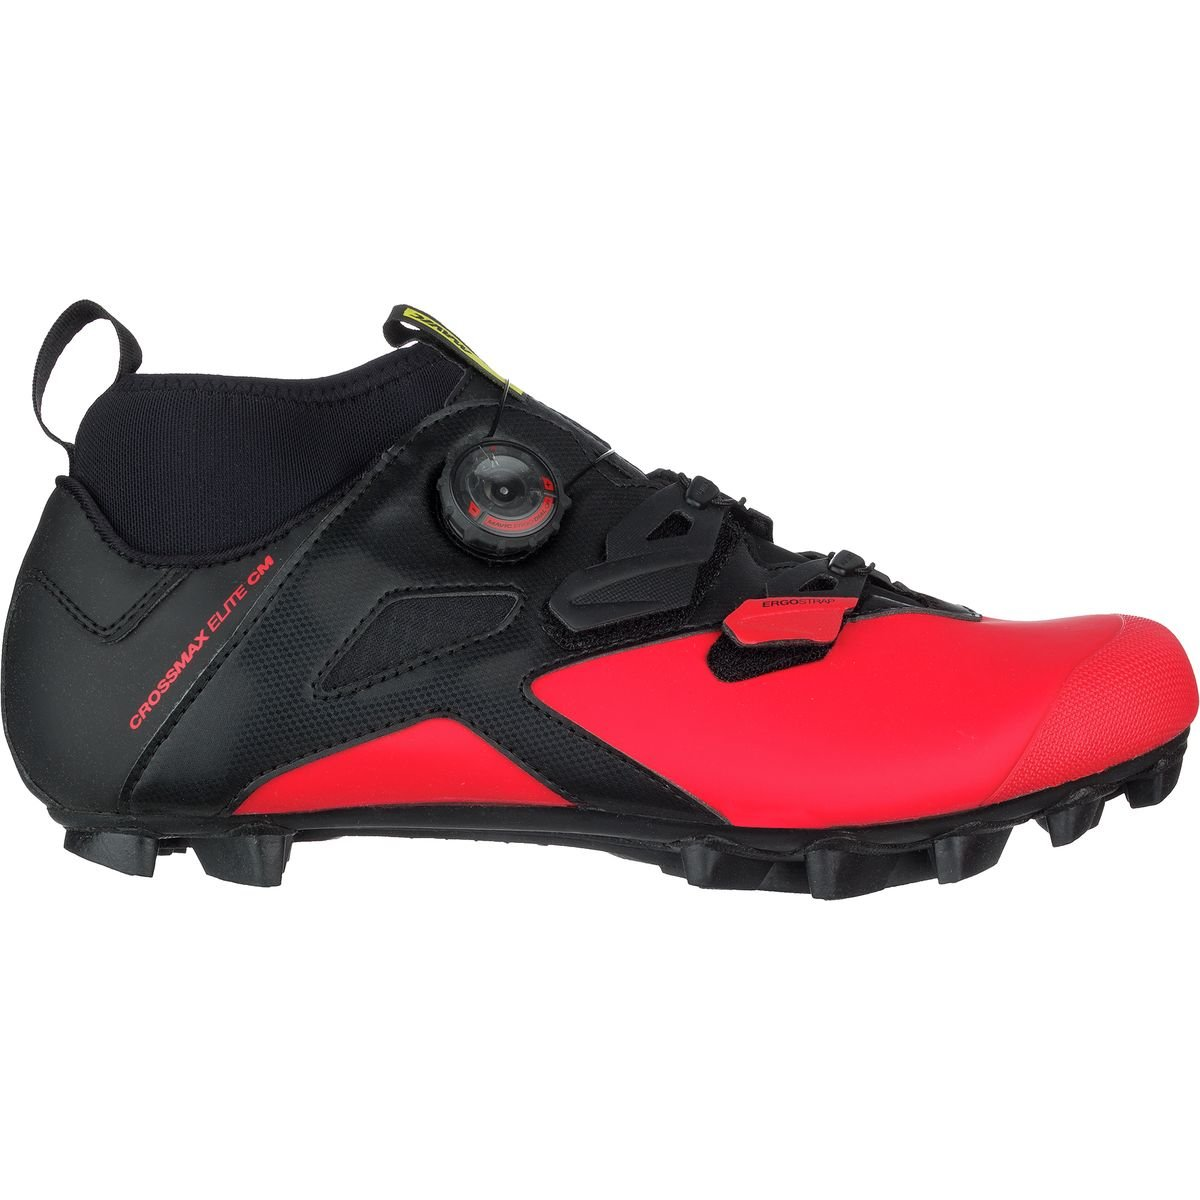 Mavic Crossmax Elite CM Shoe – Men 's Black/Fiery Red/ブラック、US 7.5 / UK 7.0   B0711VBHQS